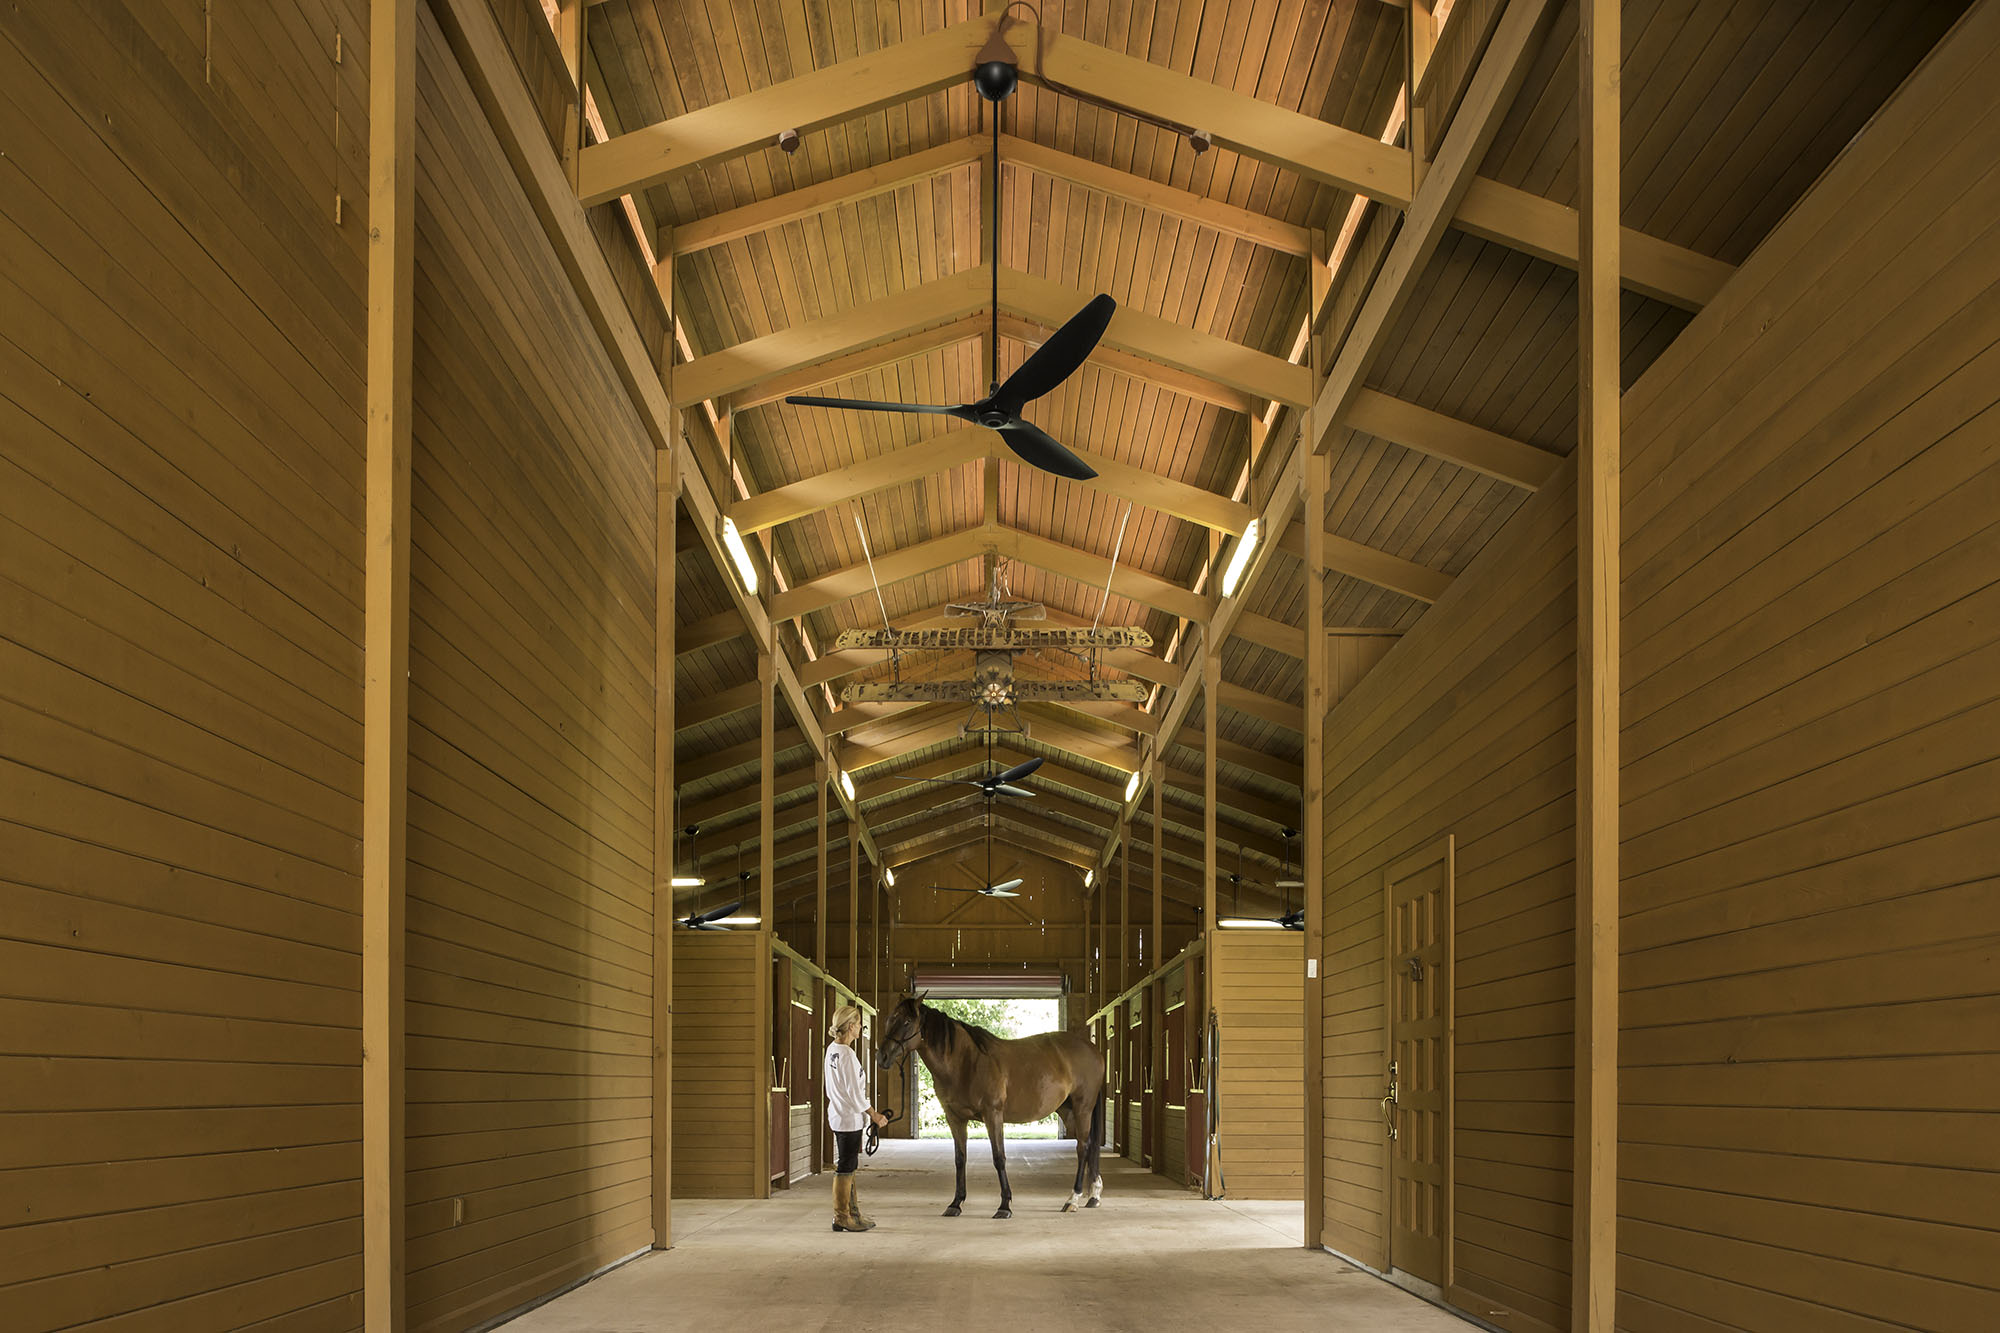 woman tending a thoroughbred horse in beautiful wood paneled barn with Haiku fans